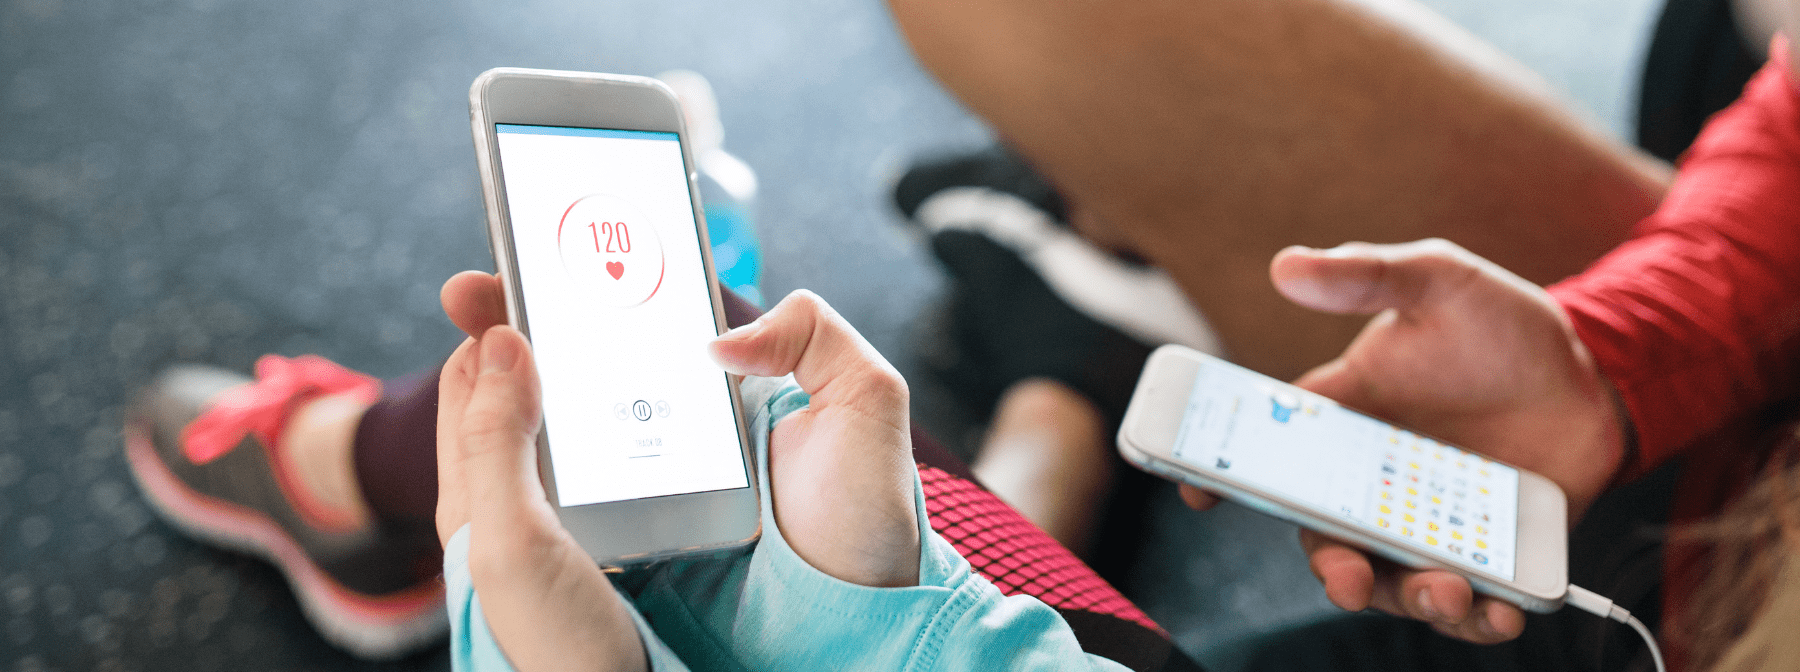 12 Of The Best Weight Loss Apps That Are Totally Free